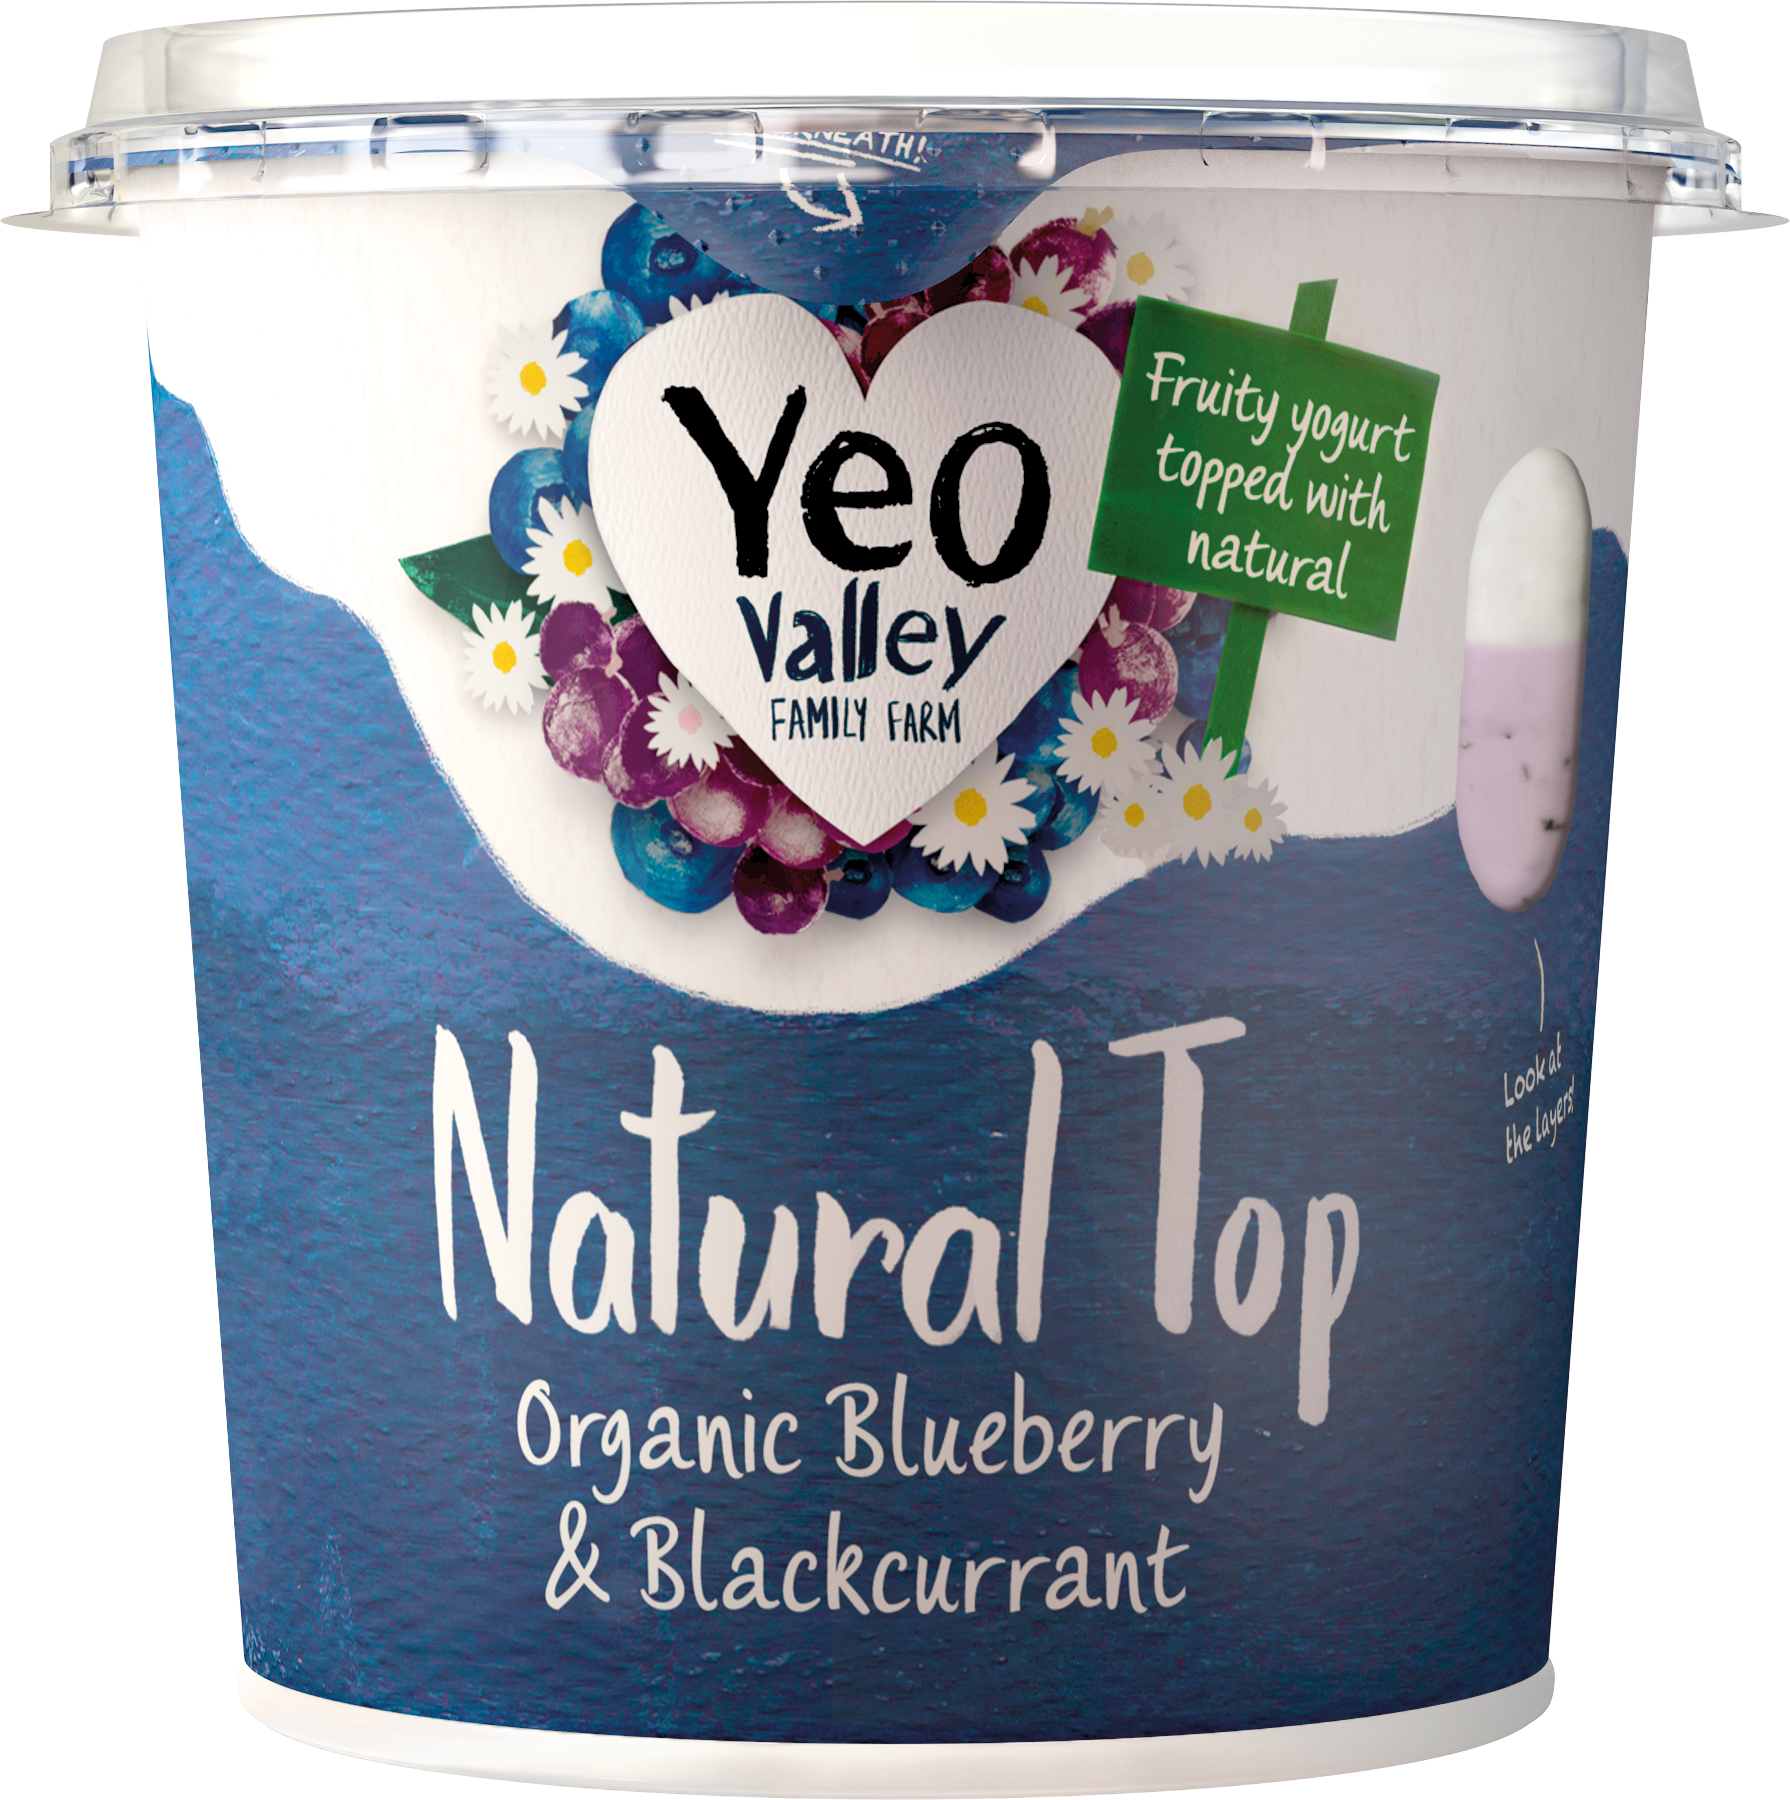 Yeo Valley organic Natural Top